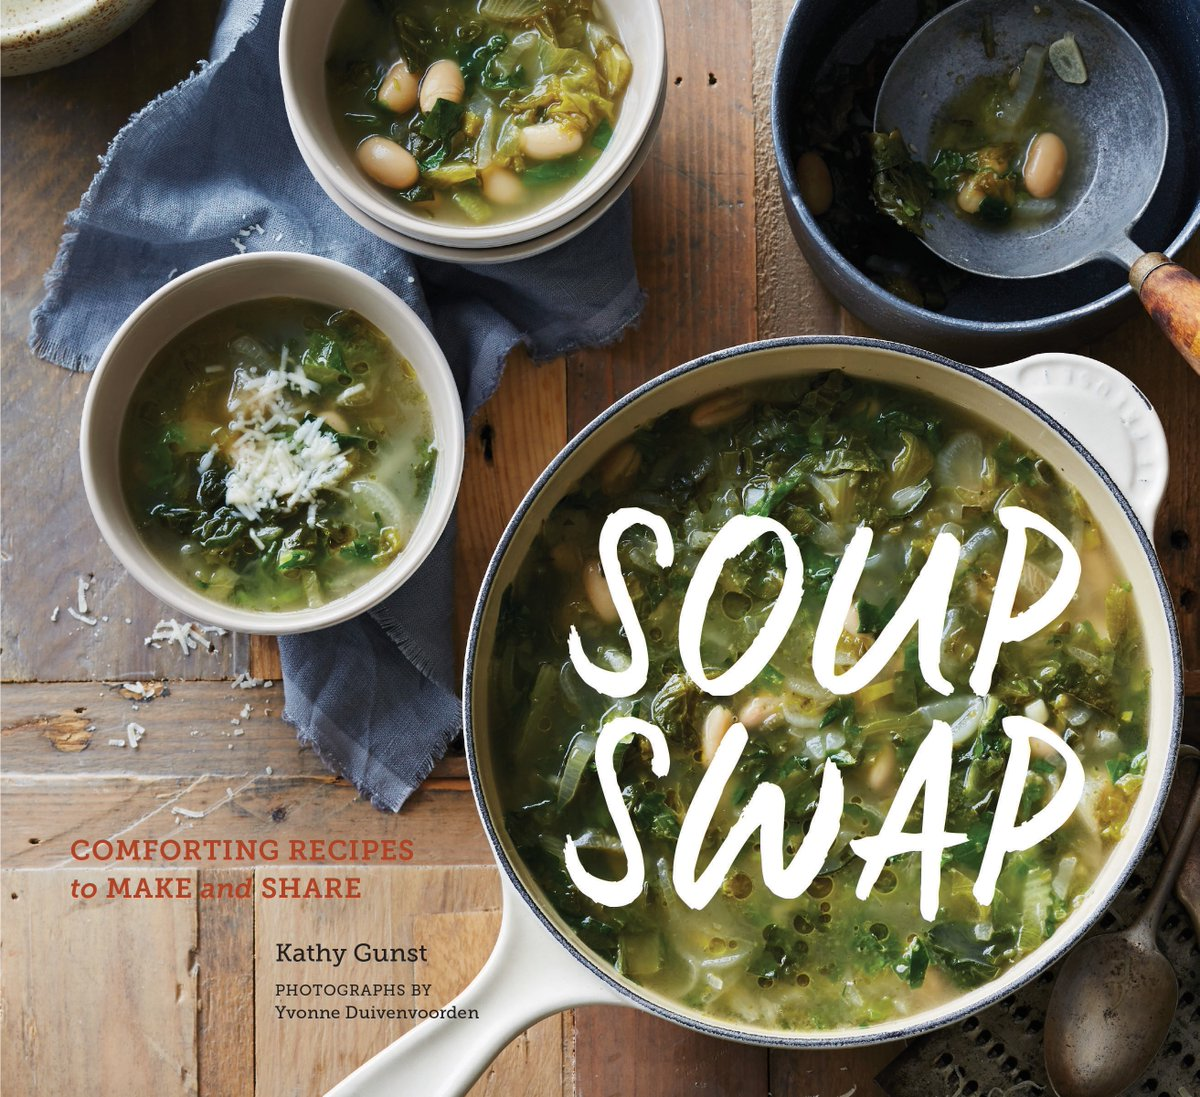 Recipe excerpted from SOUP SWAP, © 2016 by Kathy Gunst. Reproduced by permission of Chronicle Books. All rights reserved.  DISCLOSURE: A review copy of this book was provided by the publisher, as always all opinions are my own.